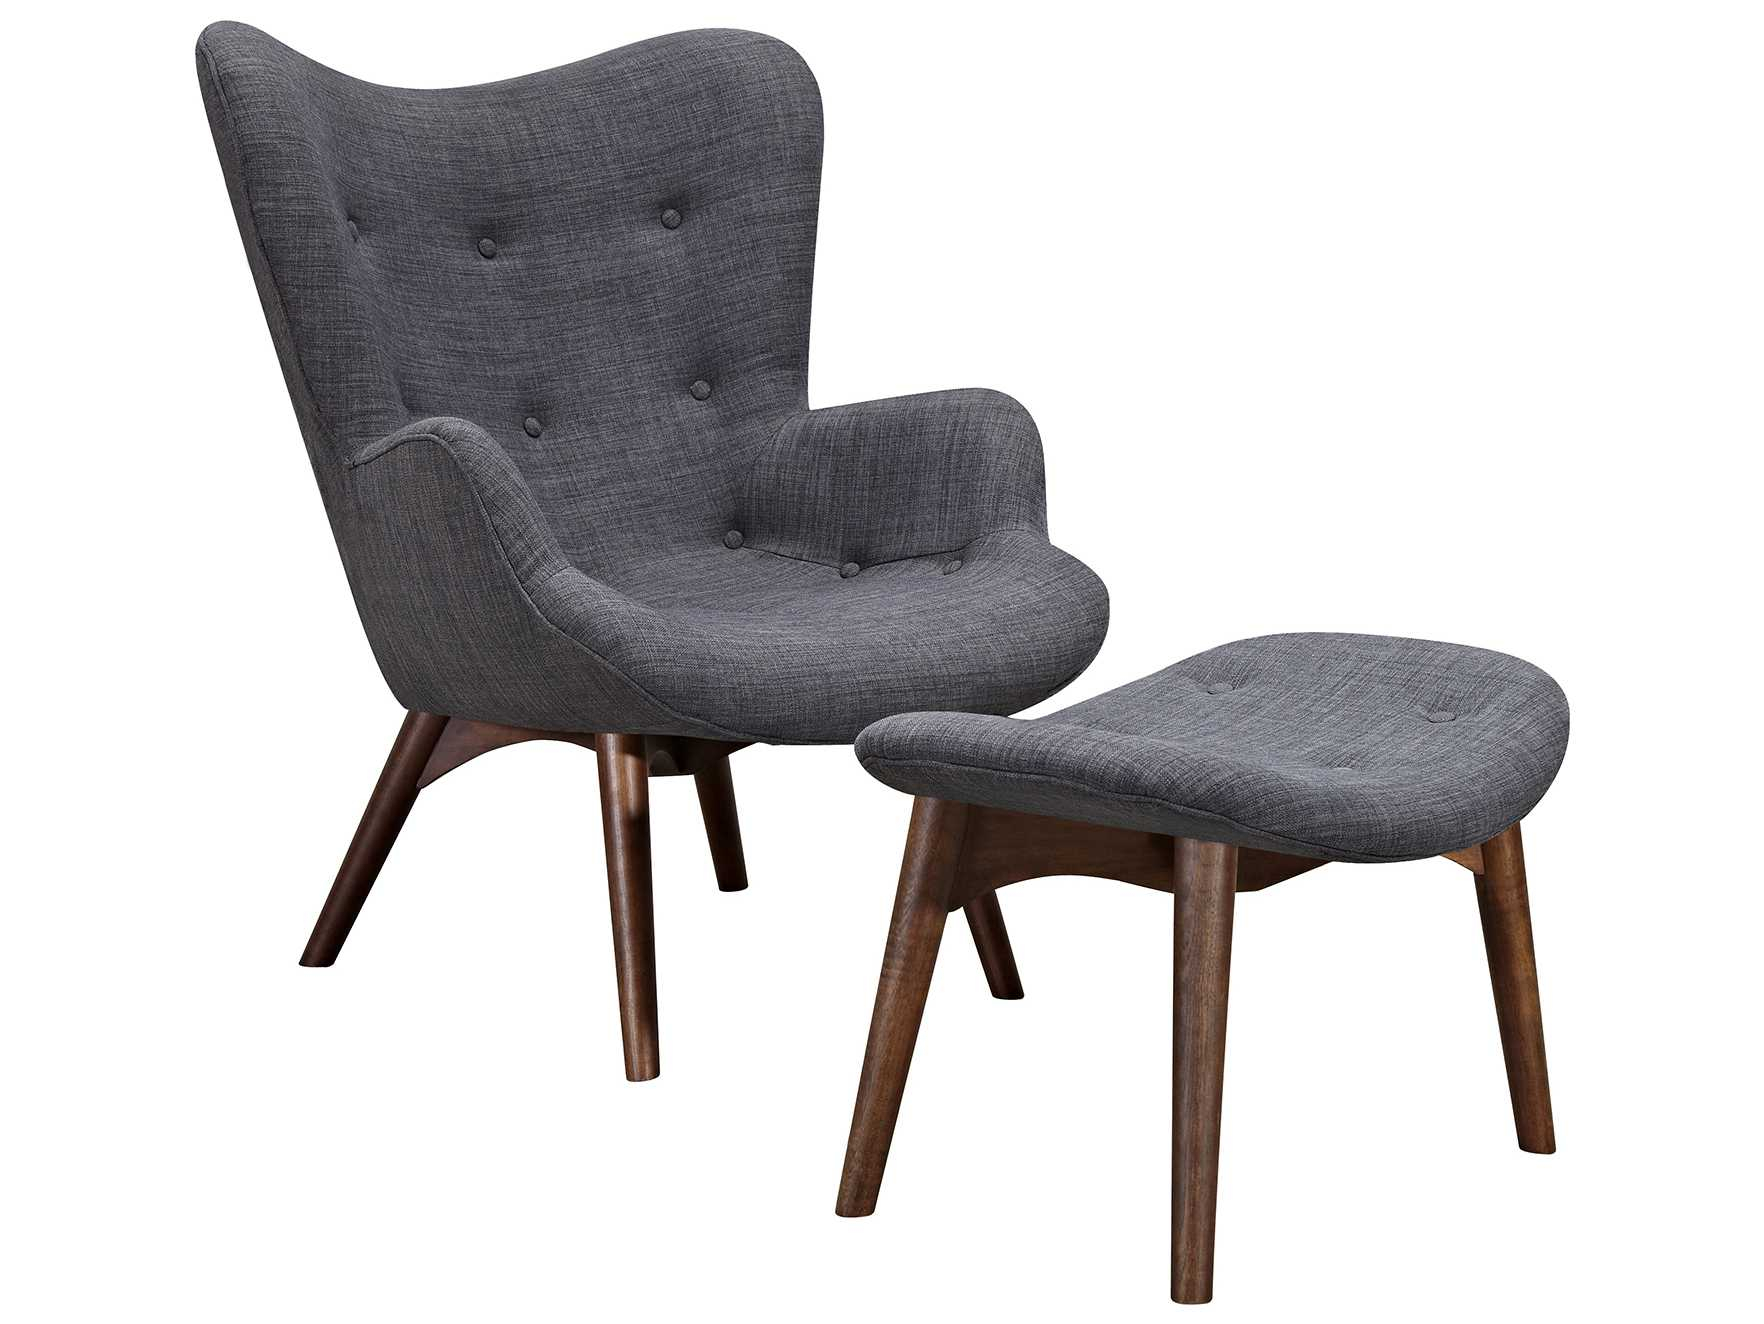 Nyekoncept Aiden Charcoal Gray Accent Chair & Ottoman With Walnut With Regard To Aidan Ii Swivel Accent Chairs (Image 14 of 20)